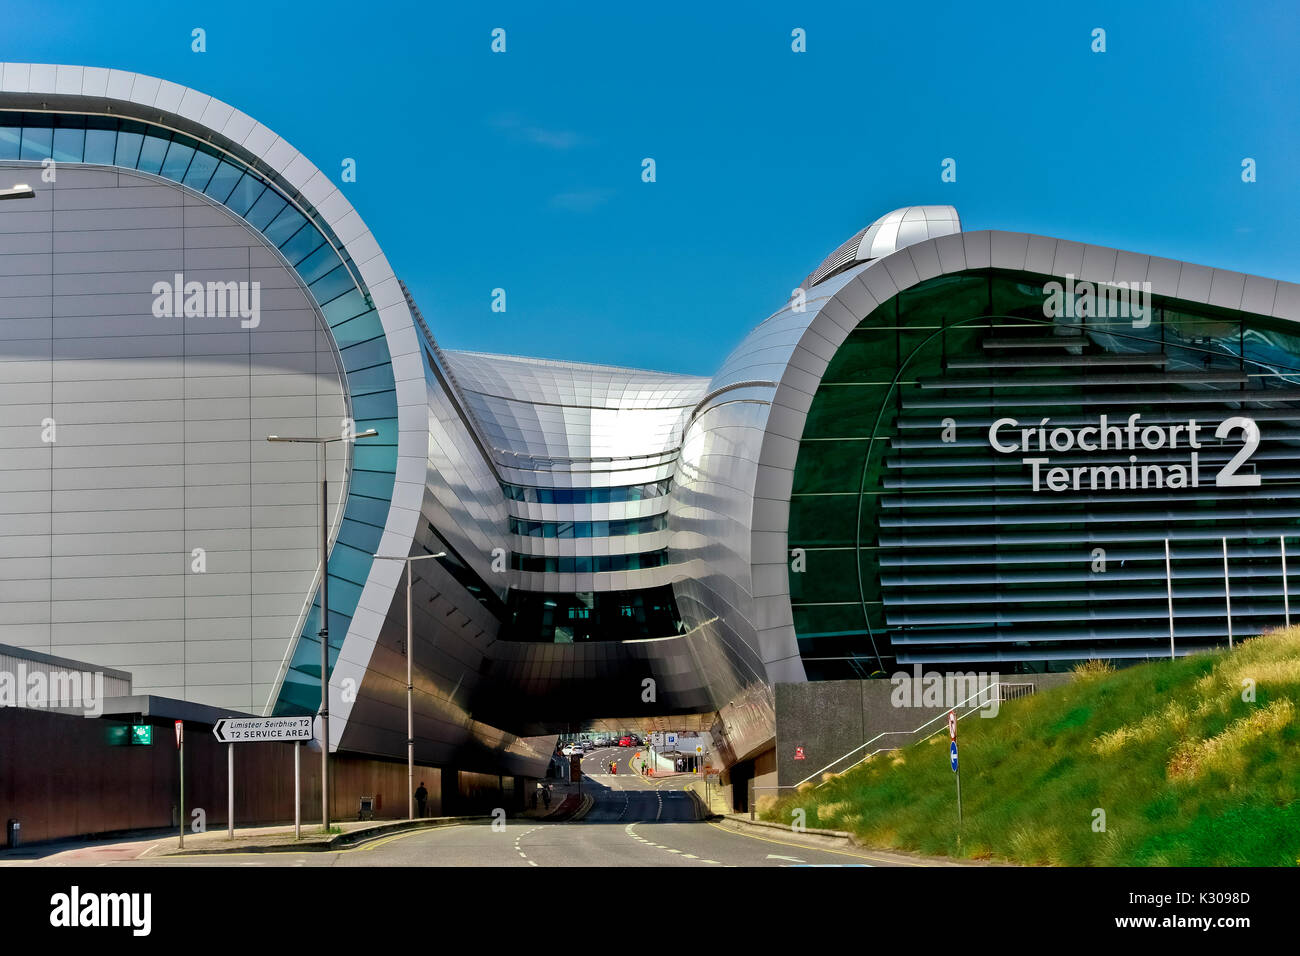 New Terminal 2, T2 Criochfort Dublin Interenational Airport, by architects Pascall & Watson. Clear blue blu sky, copy space. Ireland, European Union - Stock Image